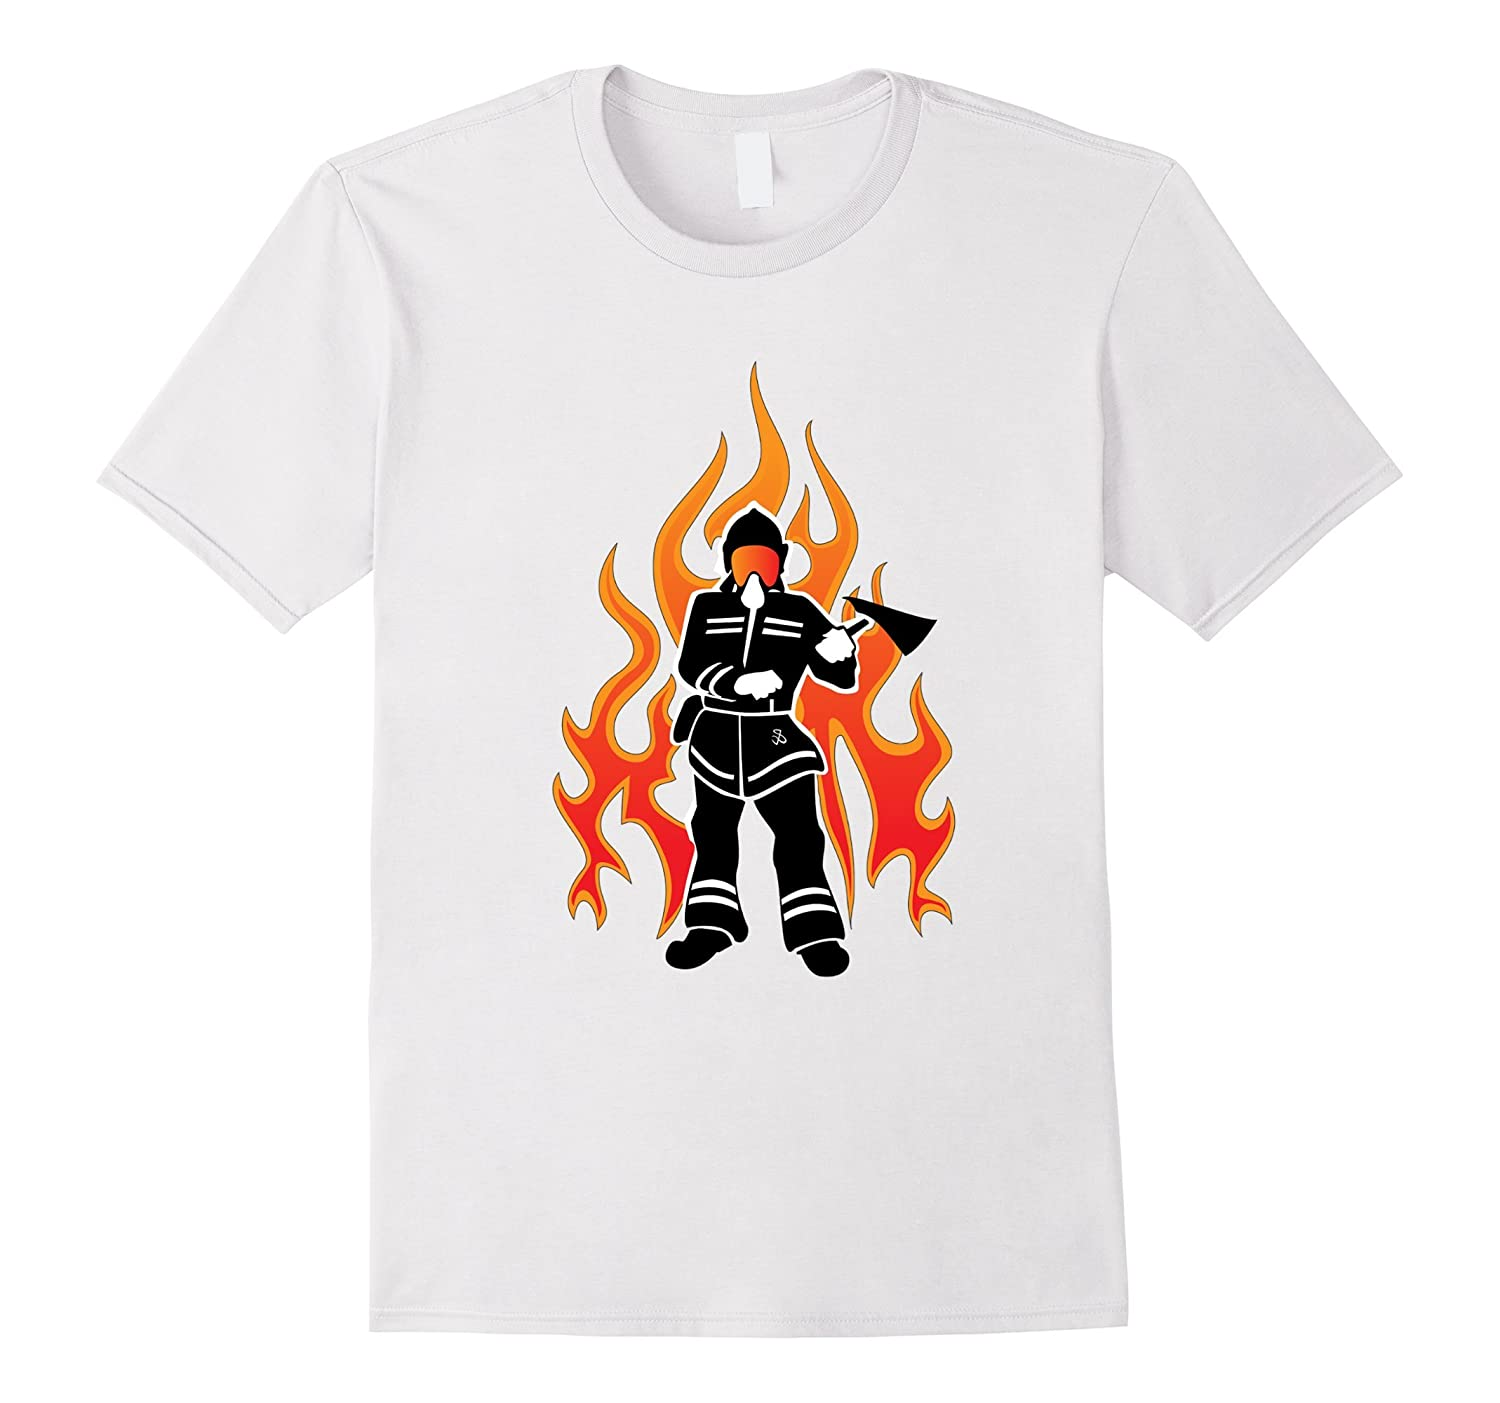 f69f92a8 Firefighter Flames T-Shirt for Firemen and First Responders-PL ...